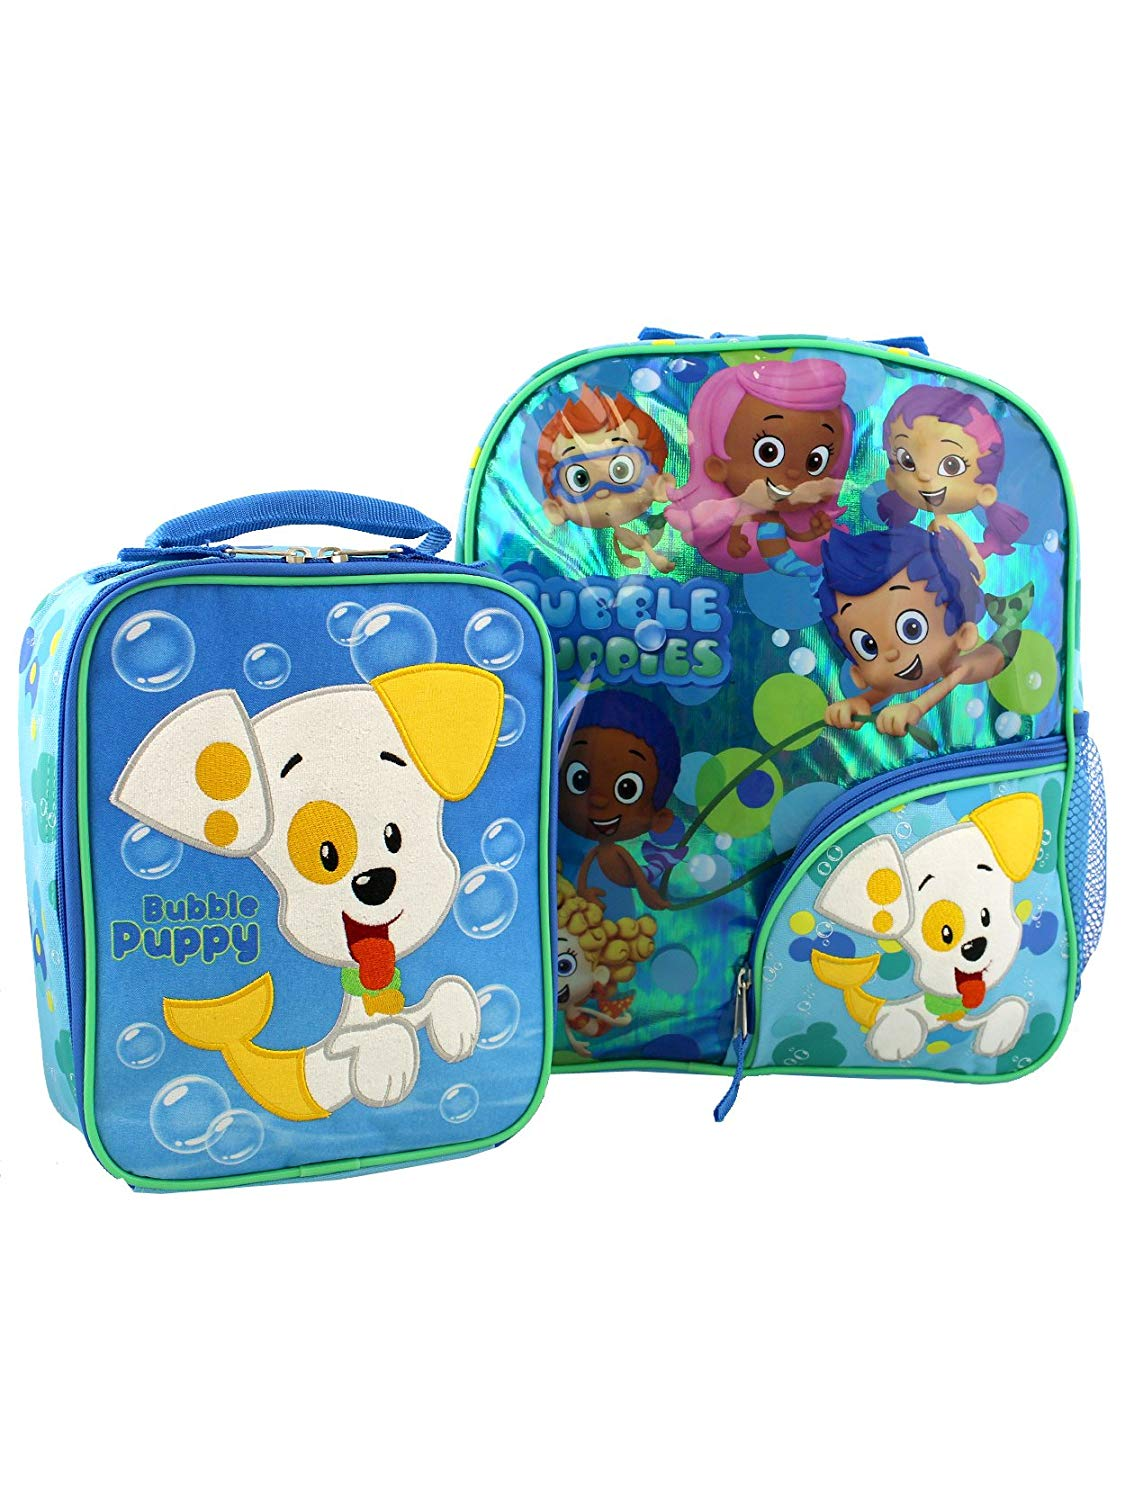 Bubble Guppies Toddler Boys Girls 14 Inch Backpack and Lunch Box School Set  (Blue  27da74d1b0cd7